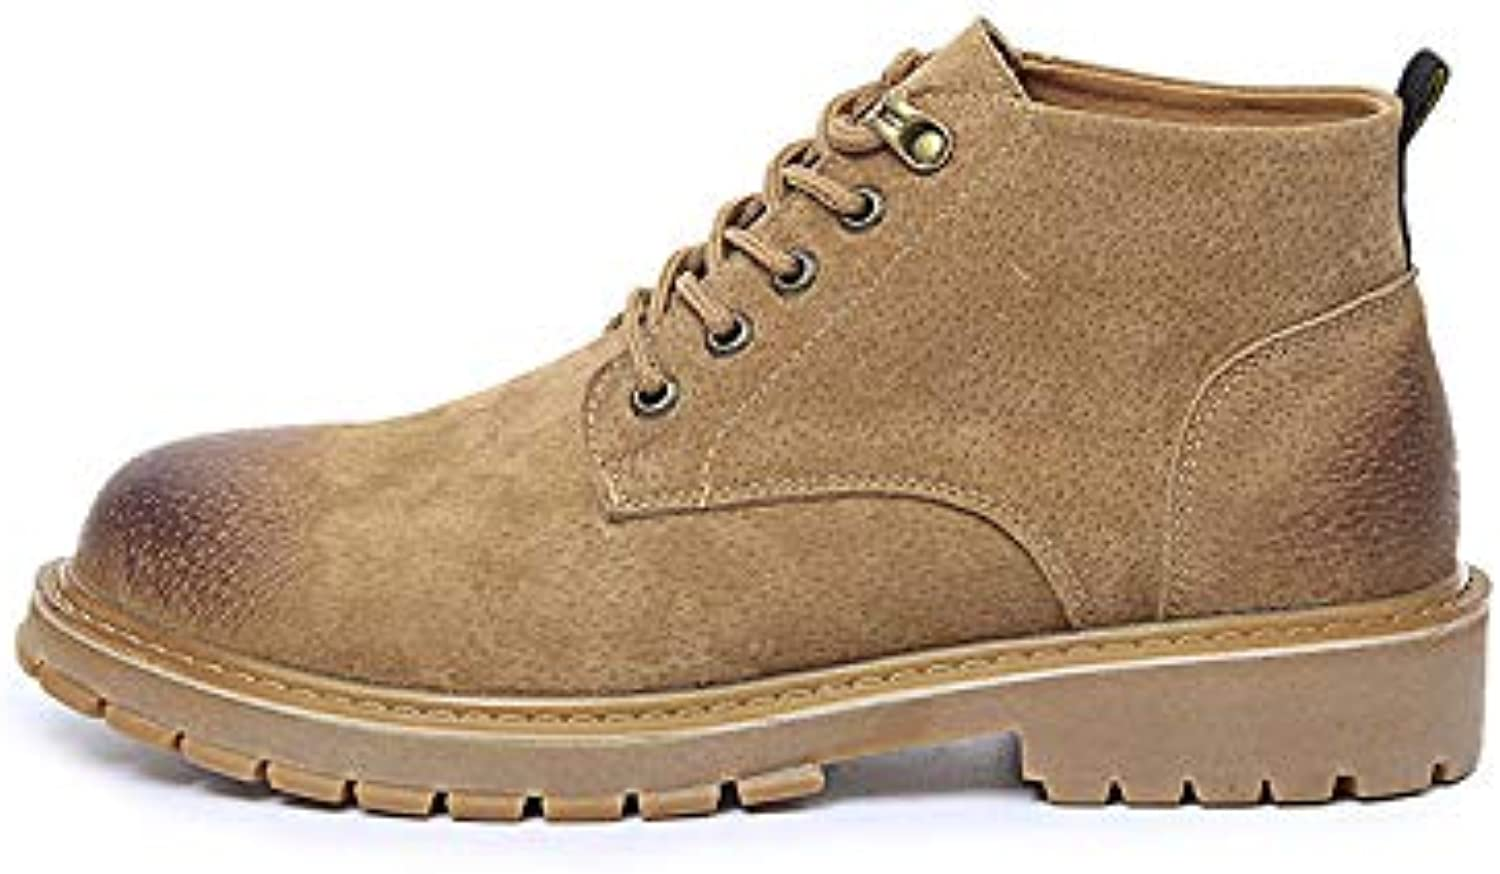 LOVDRAM Boots Men's Martin Boots Men'S Autumn And Winter Models Wild Leather Boots High To Help Fashion shoes Casual Large Size Men'S shoes